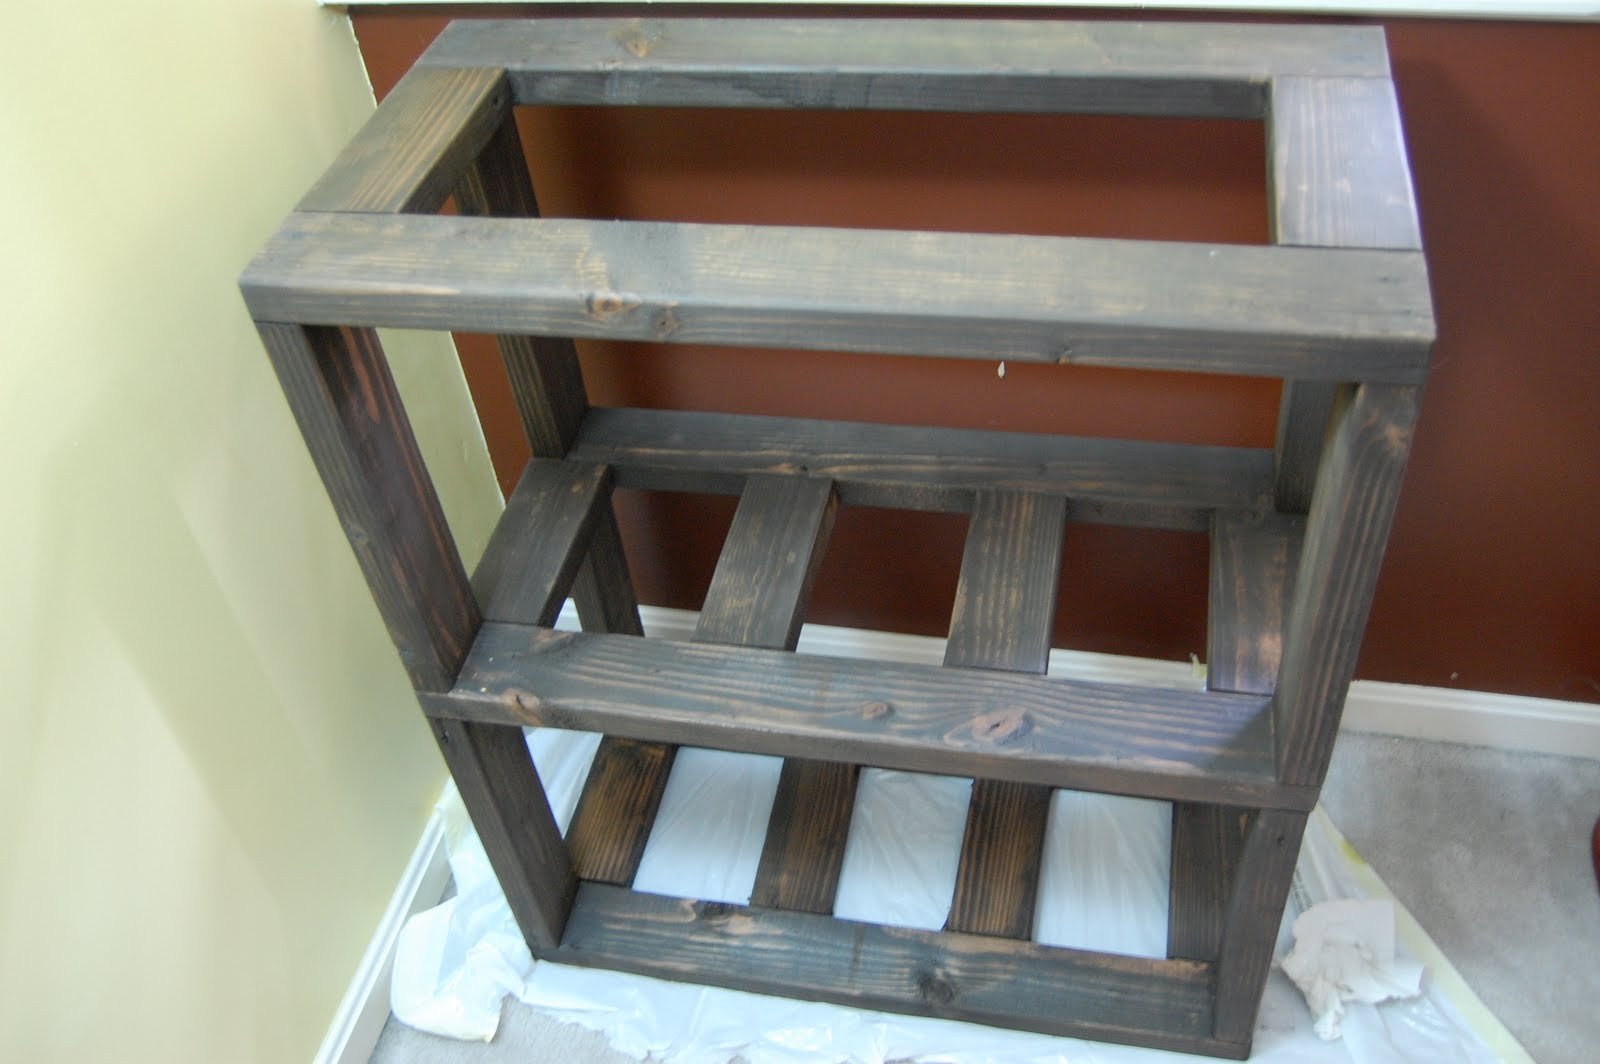 I Next Checked The Stand For Level In All Directions Either Due To Floor Or A Flaw My Craftsmanship Had Very Slight Tendency Lean